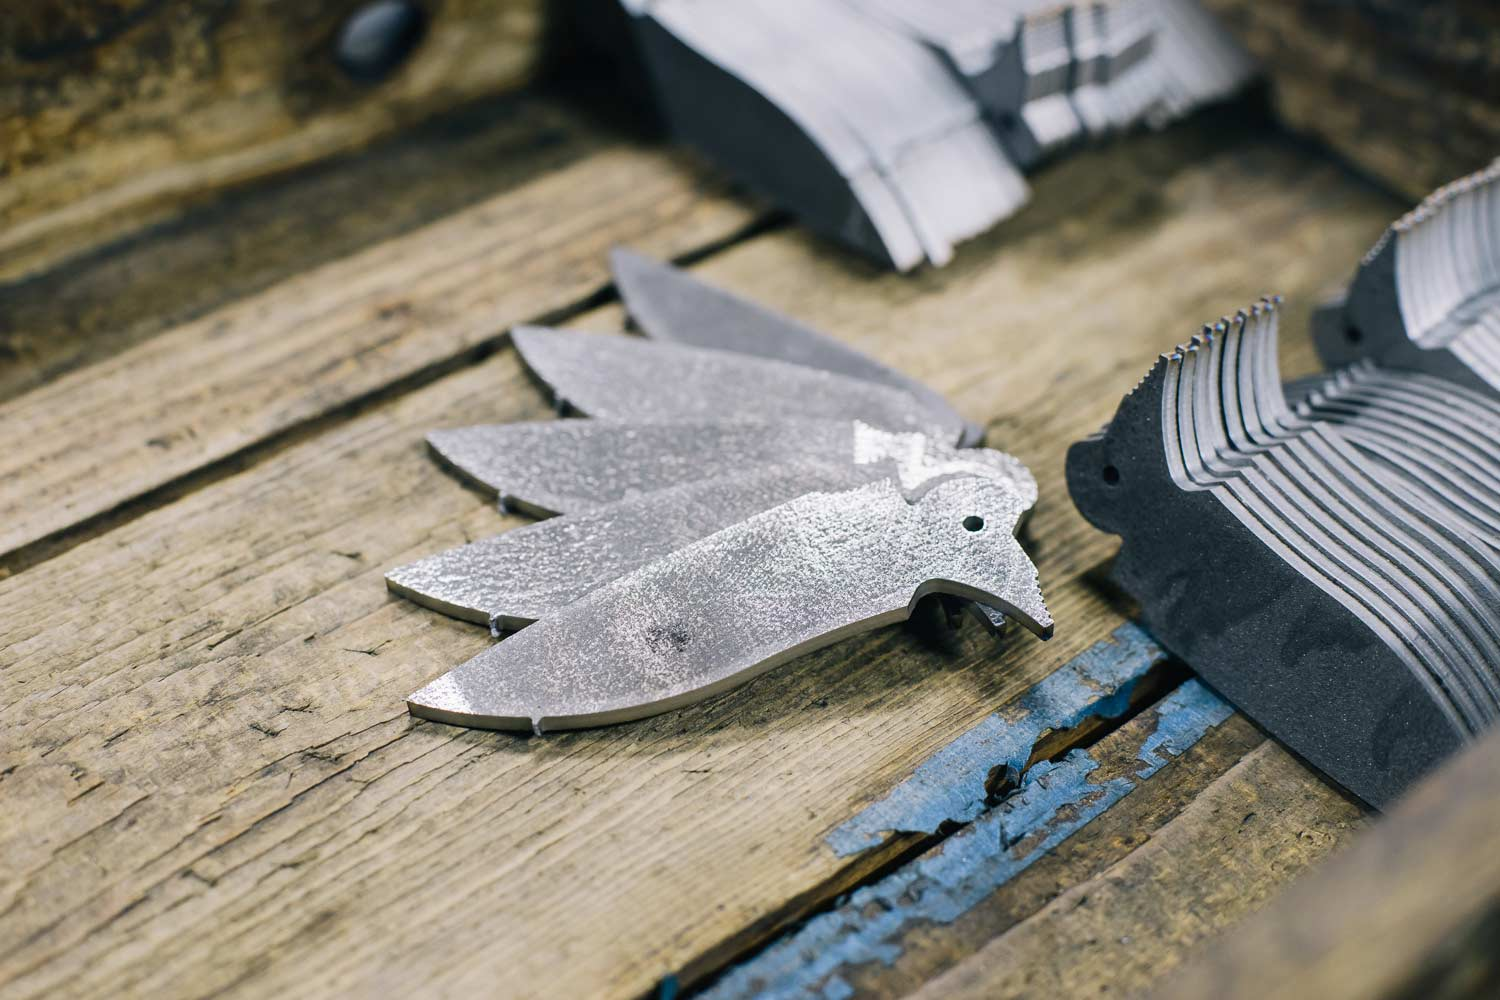 A deep dive into how knife blades are made